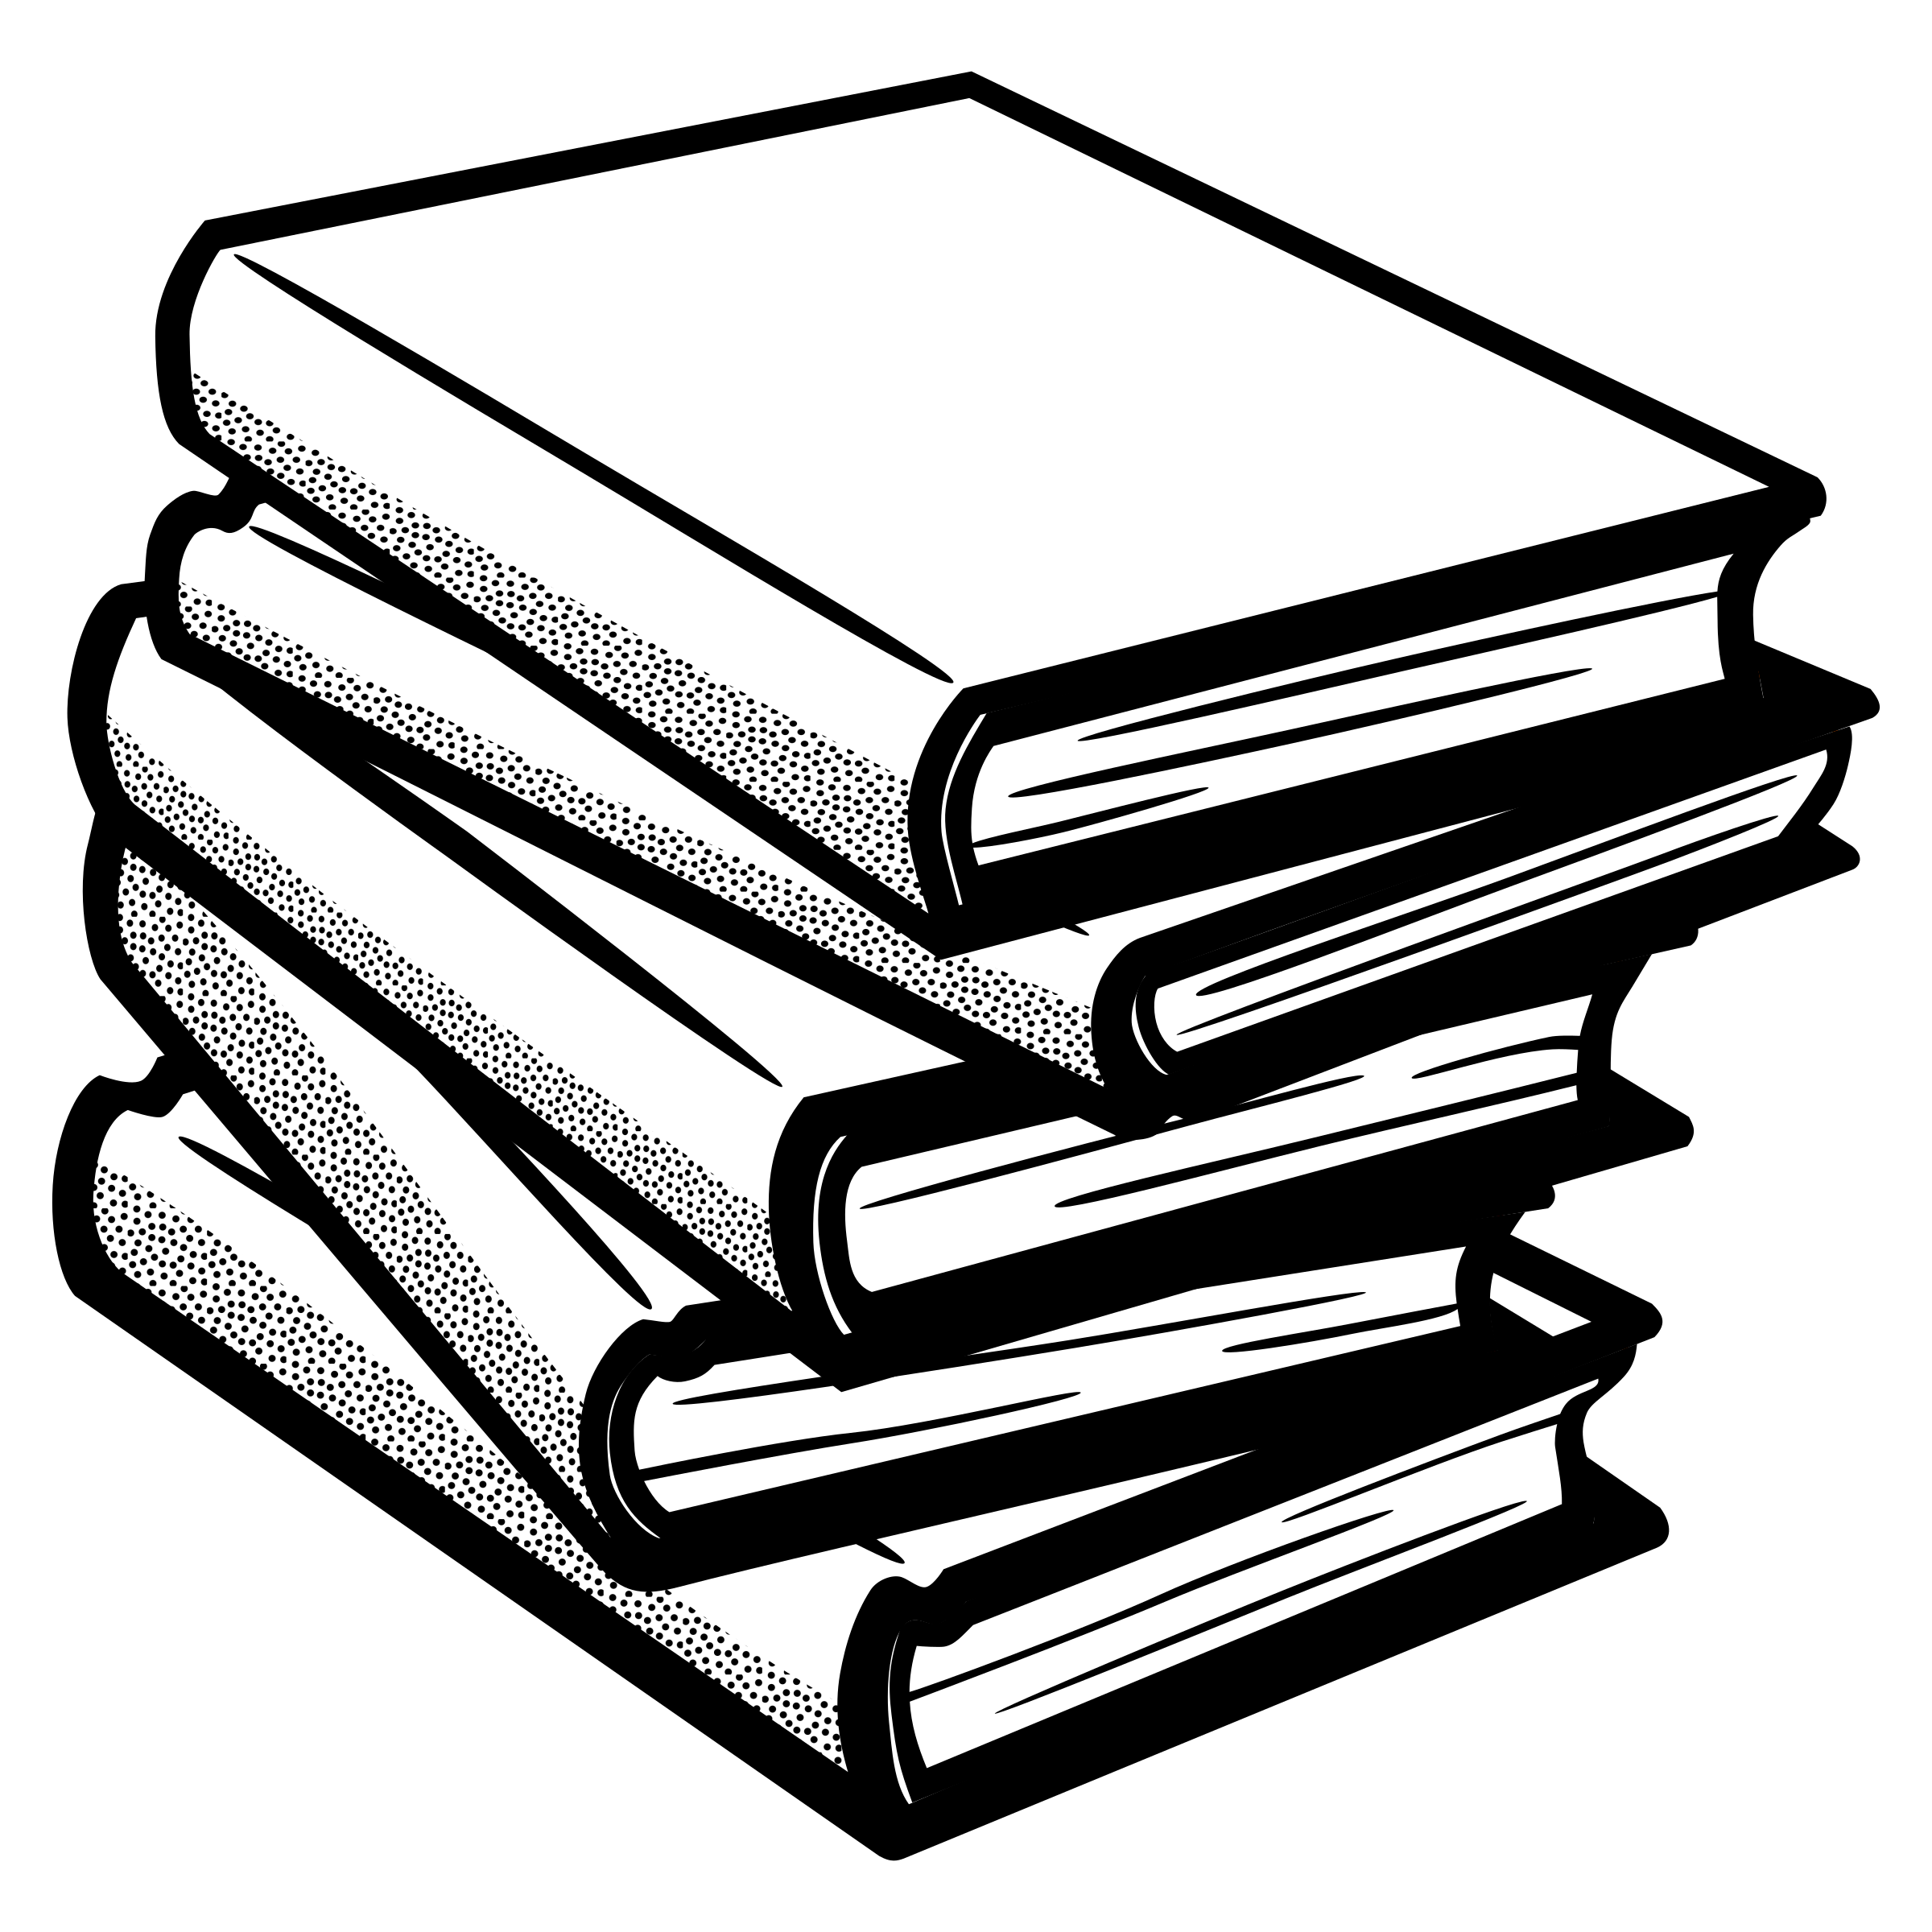 Textbook clipart thick book. Books black and white